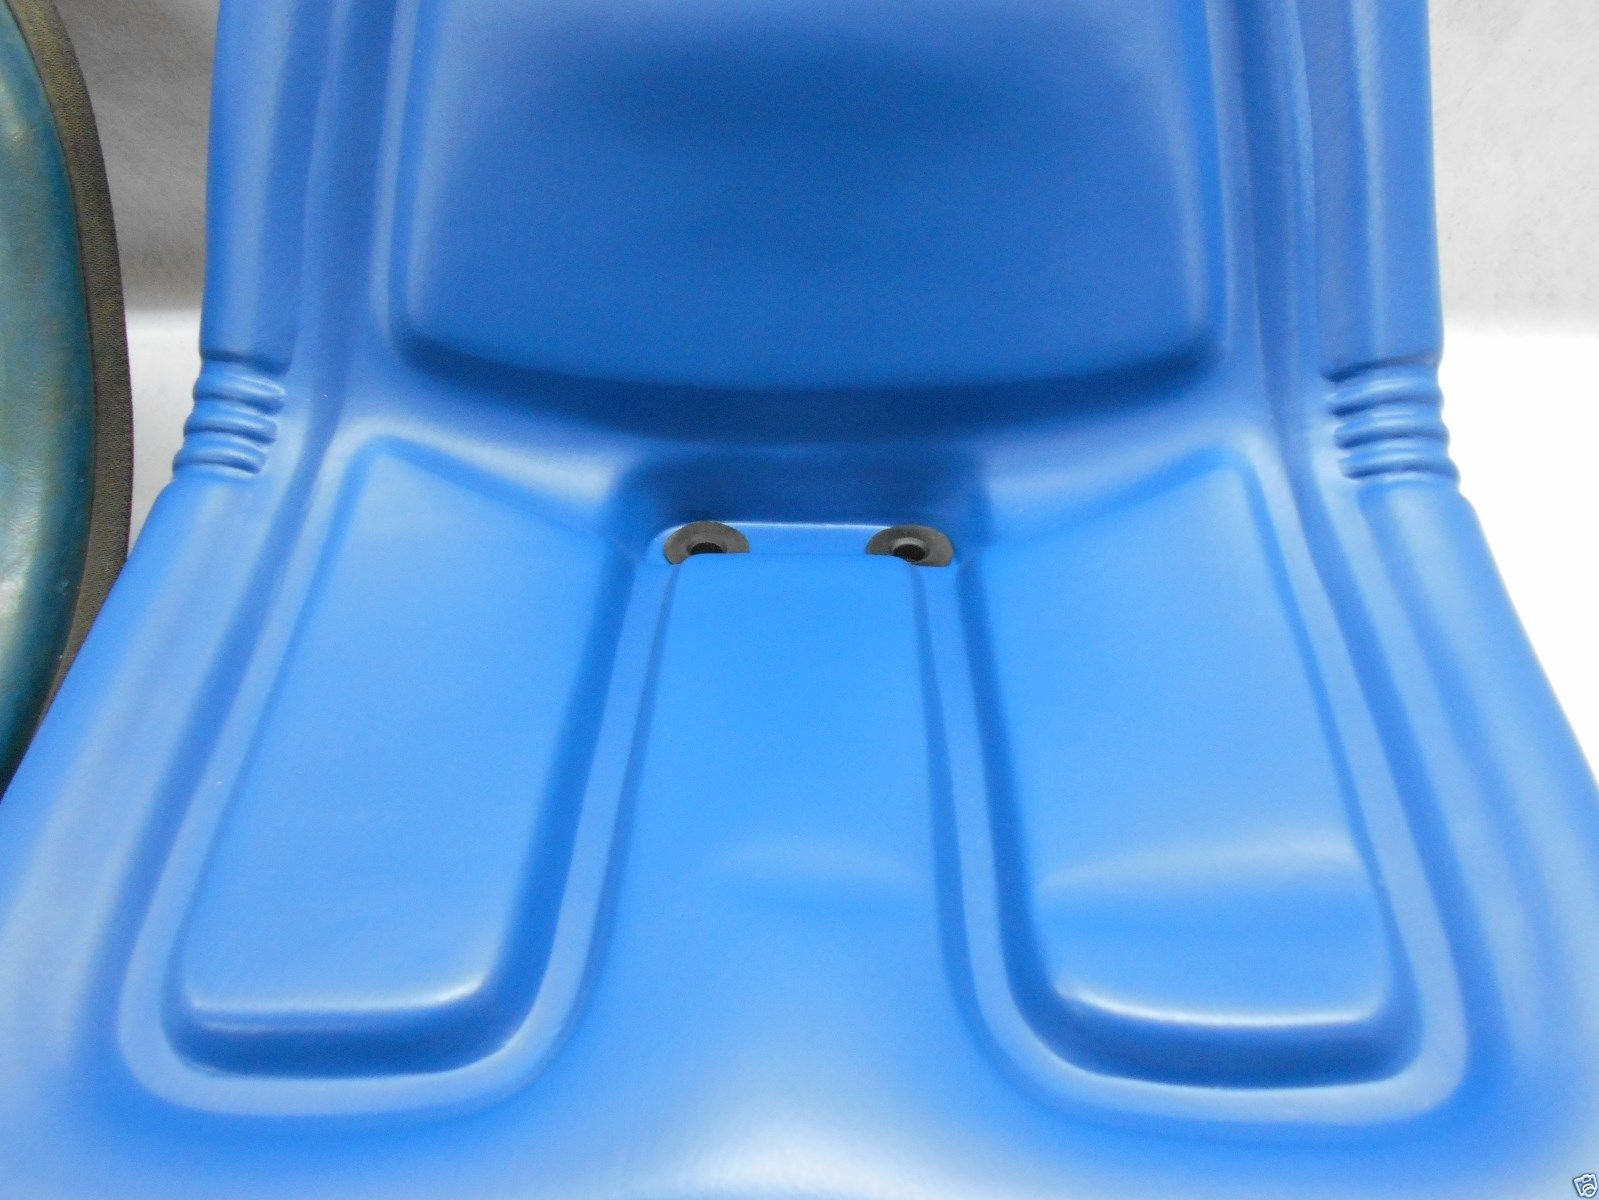 BLUE SEAT FOR FORD LAWN MOWER UTILITY TRACTORS #CS LAWN /& GARDEN FARM COMPACT